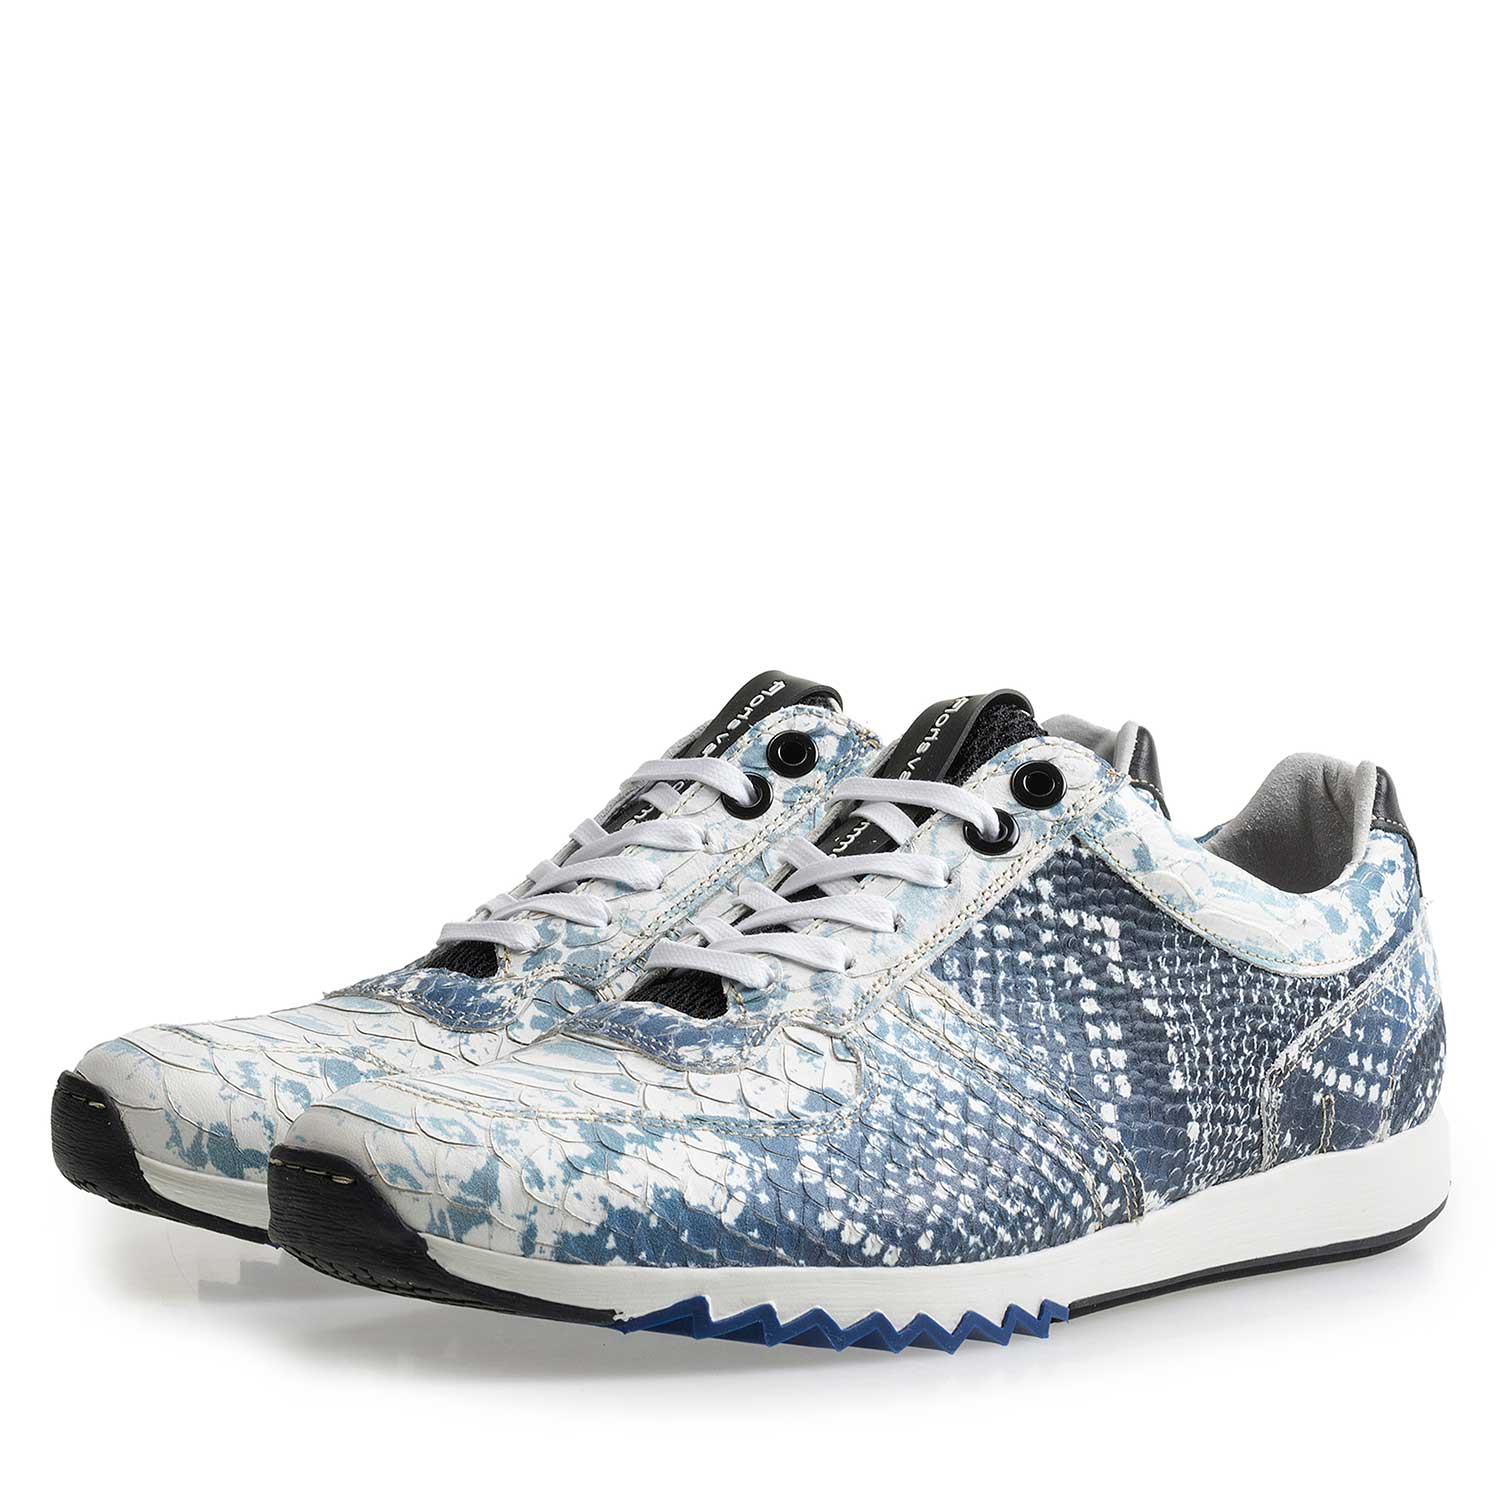 16227/14 - Dark blue sneaker with snake print